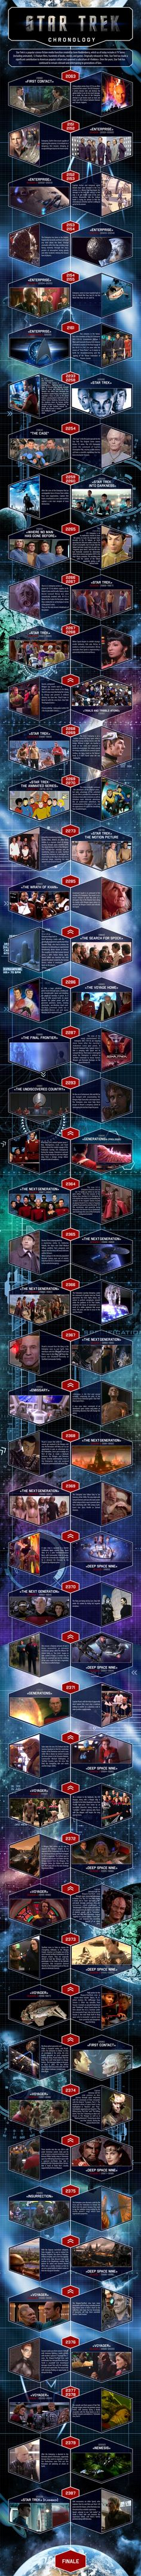 Star Trek Episodes Timeline for TV Shows & Movies Infographic.  Excellent.  Love it!